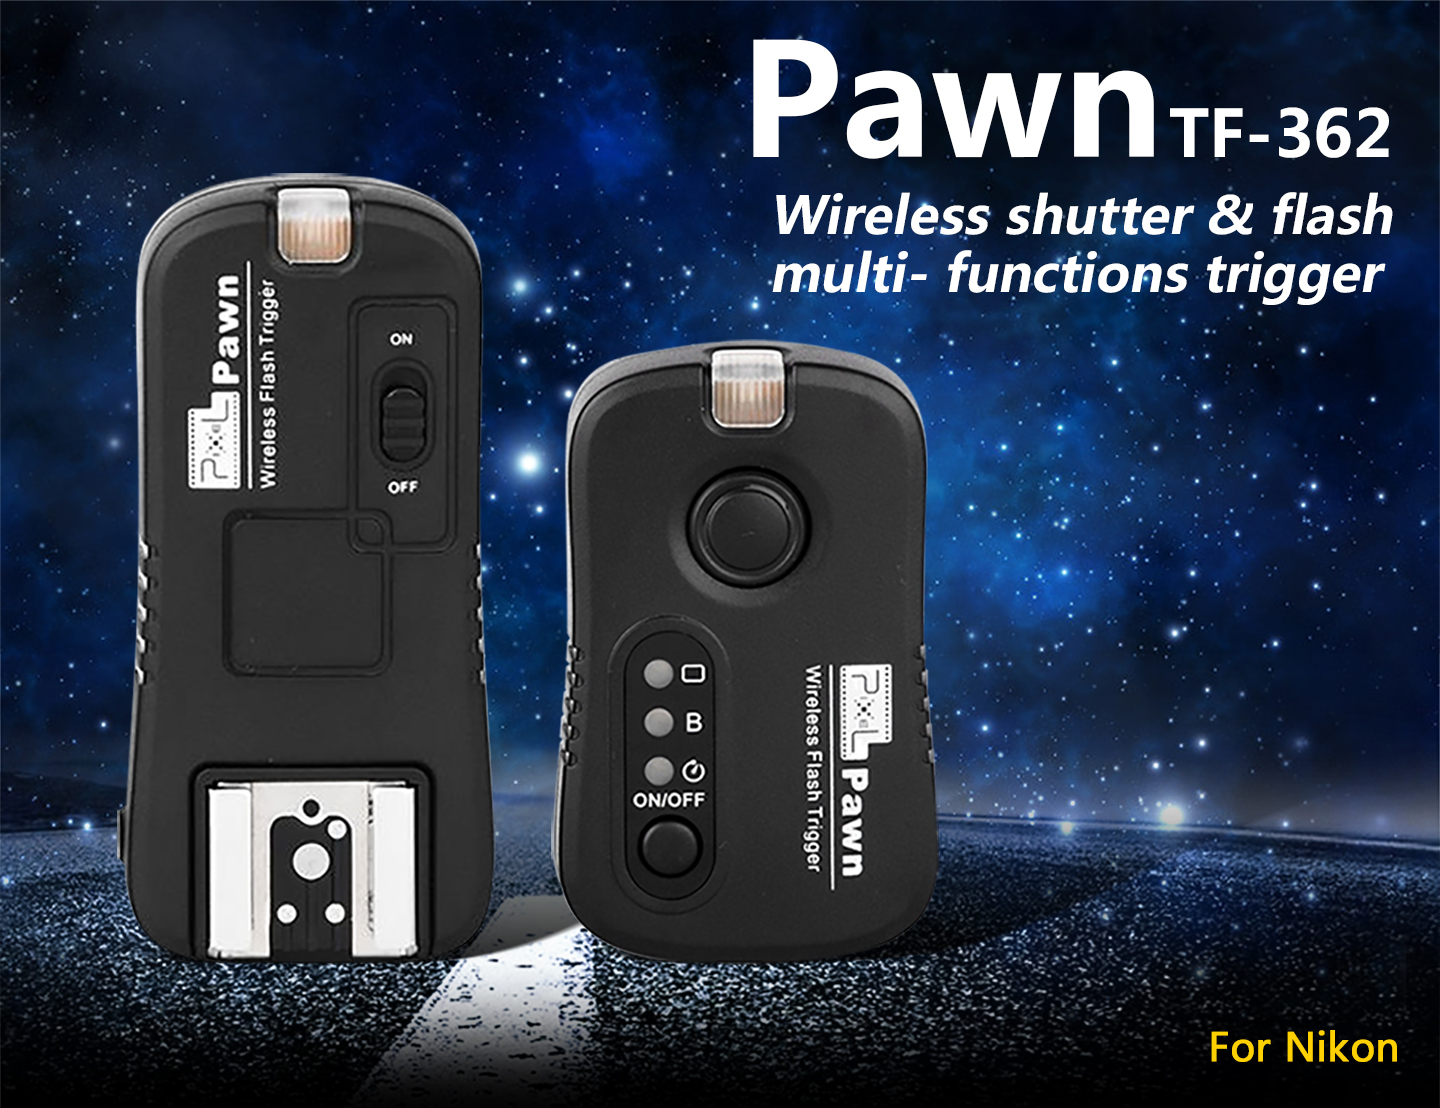 Pawn TF- 362 Wireless shutter & flash multi-functions trigger